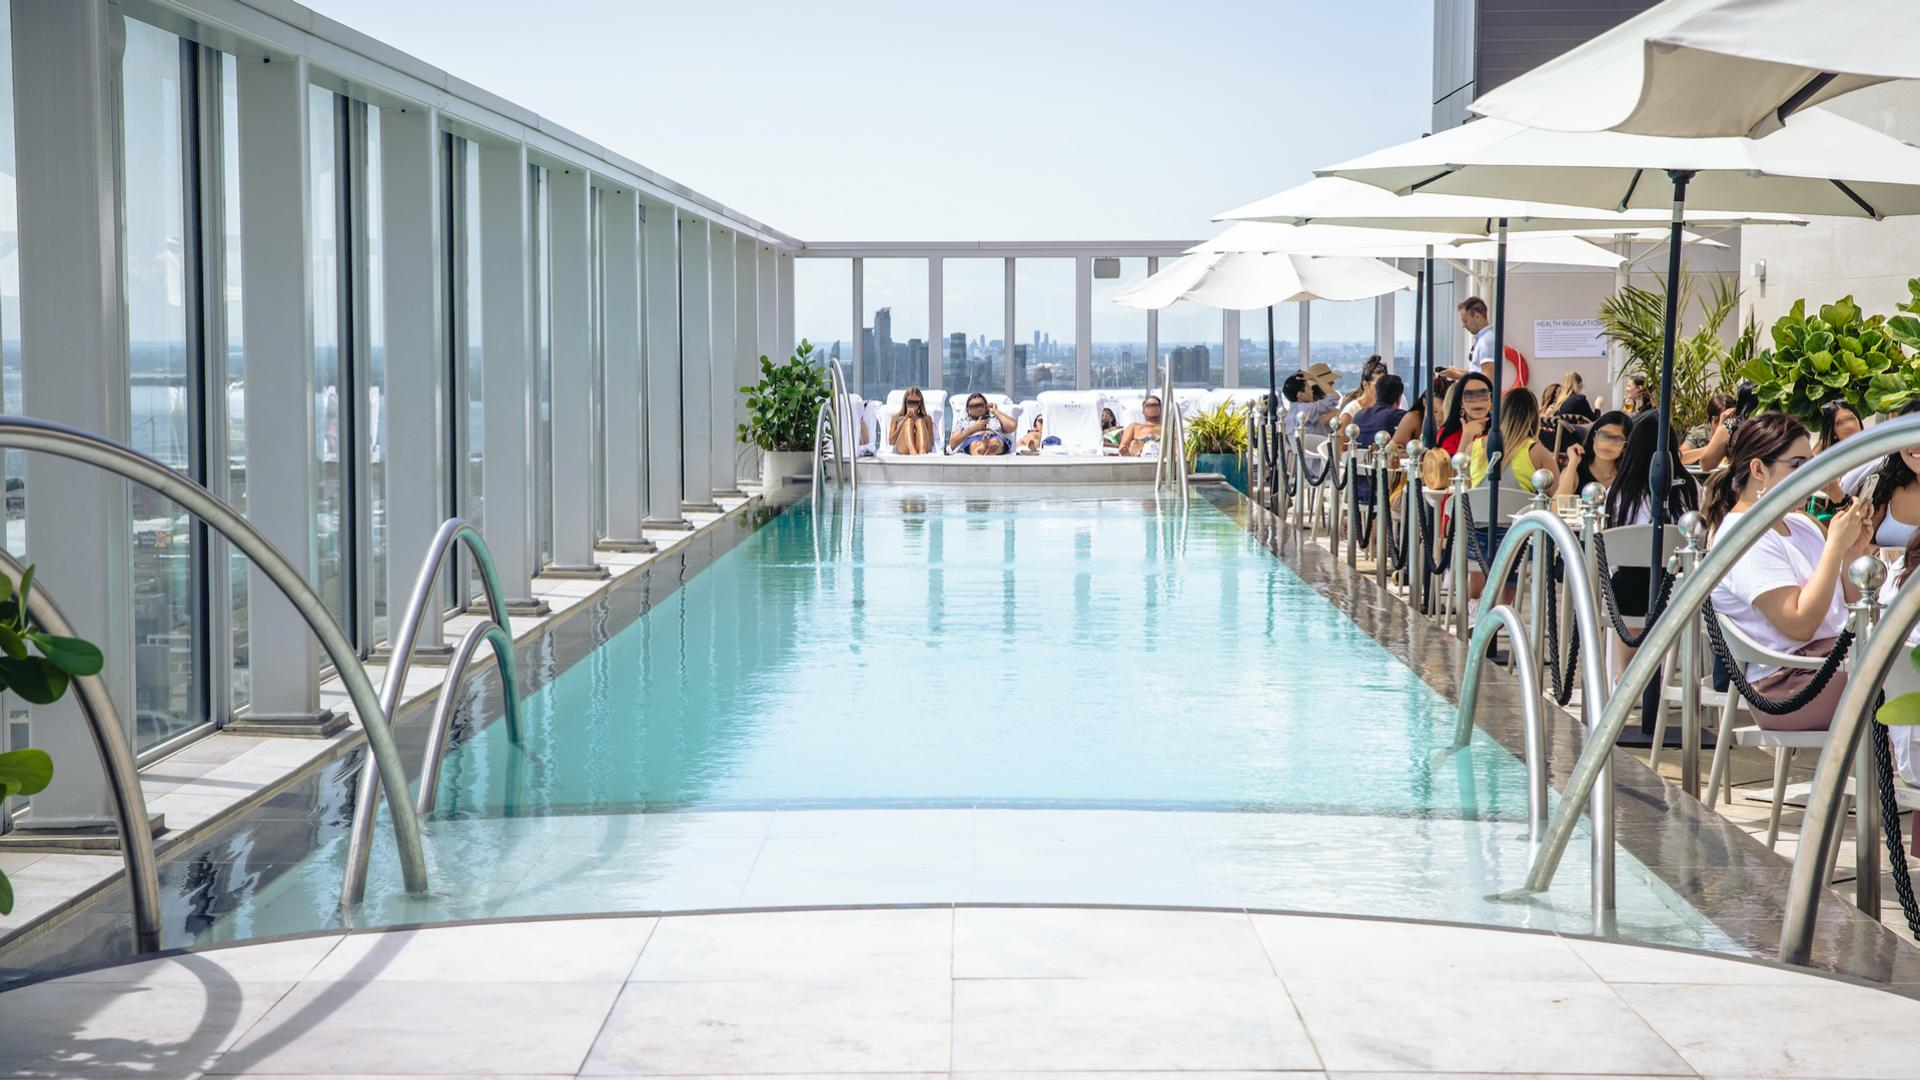 The best rooftop patios in Toronto | The sparkling infinity pool at KOST